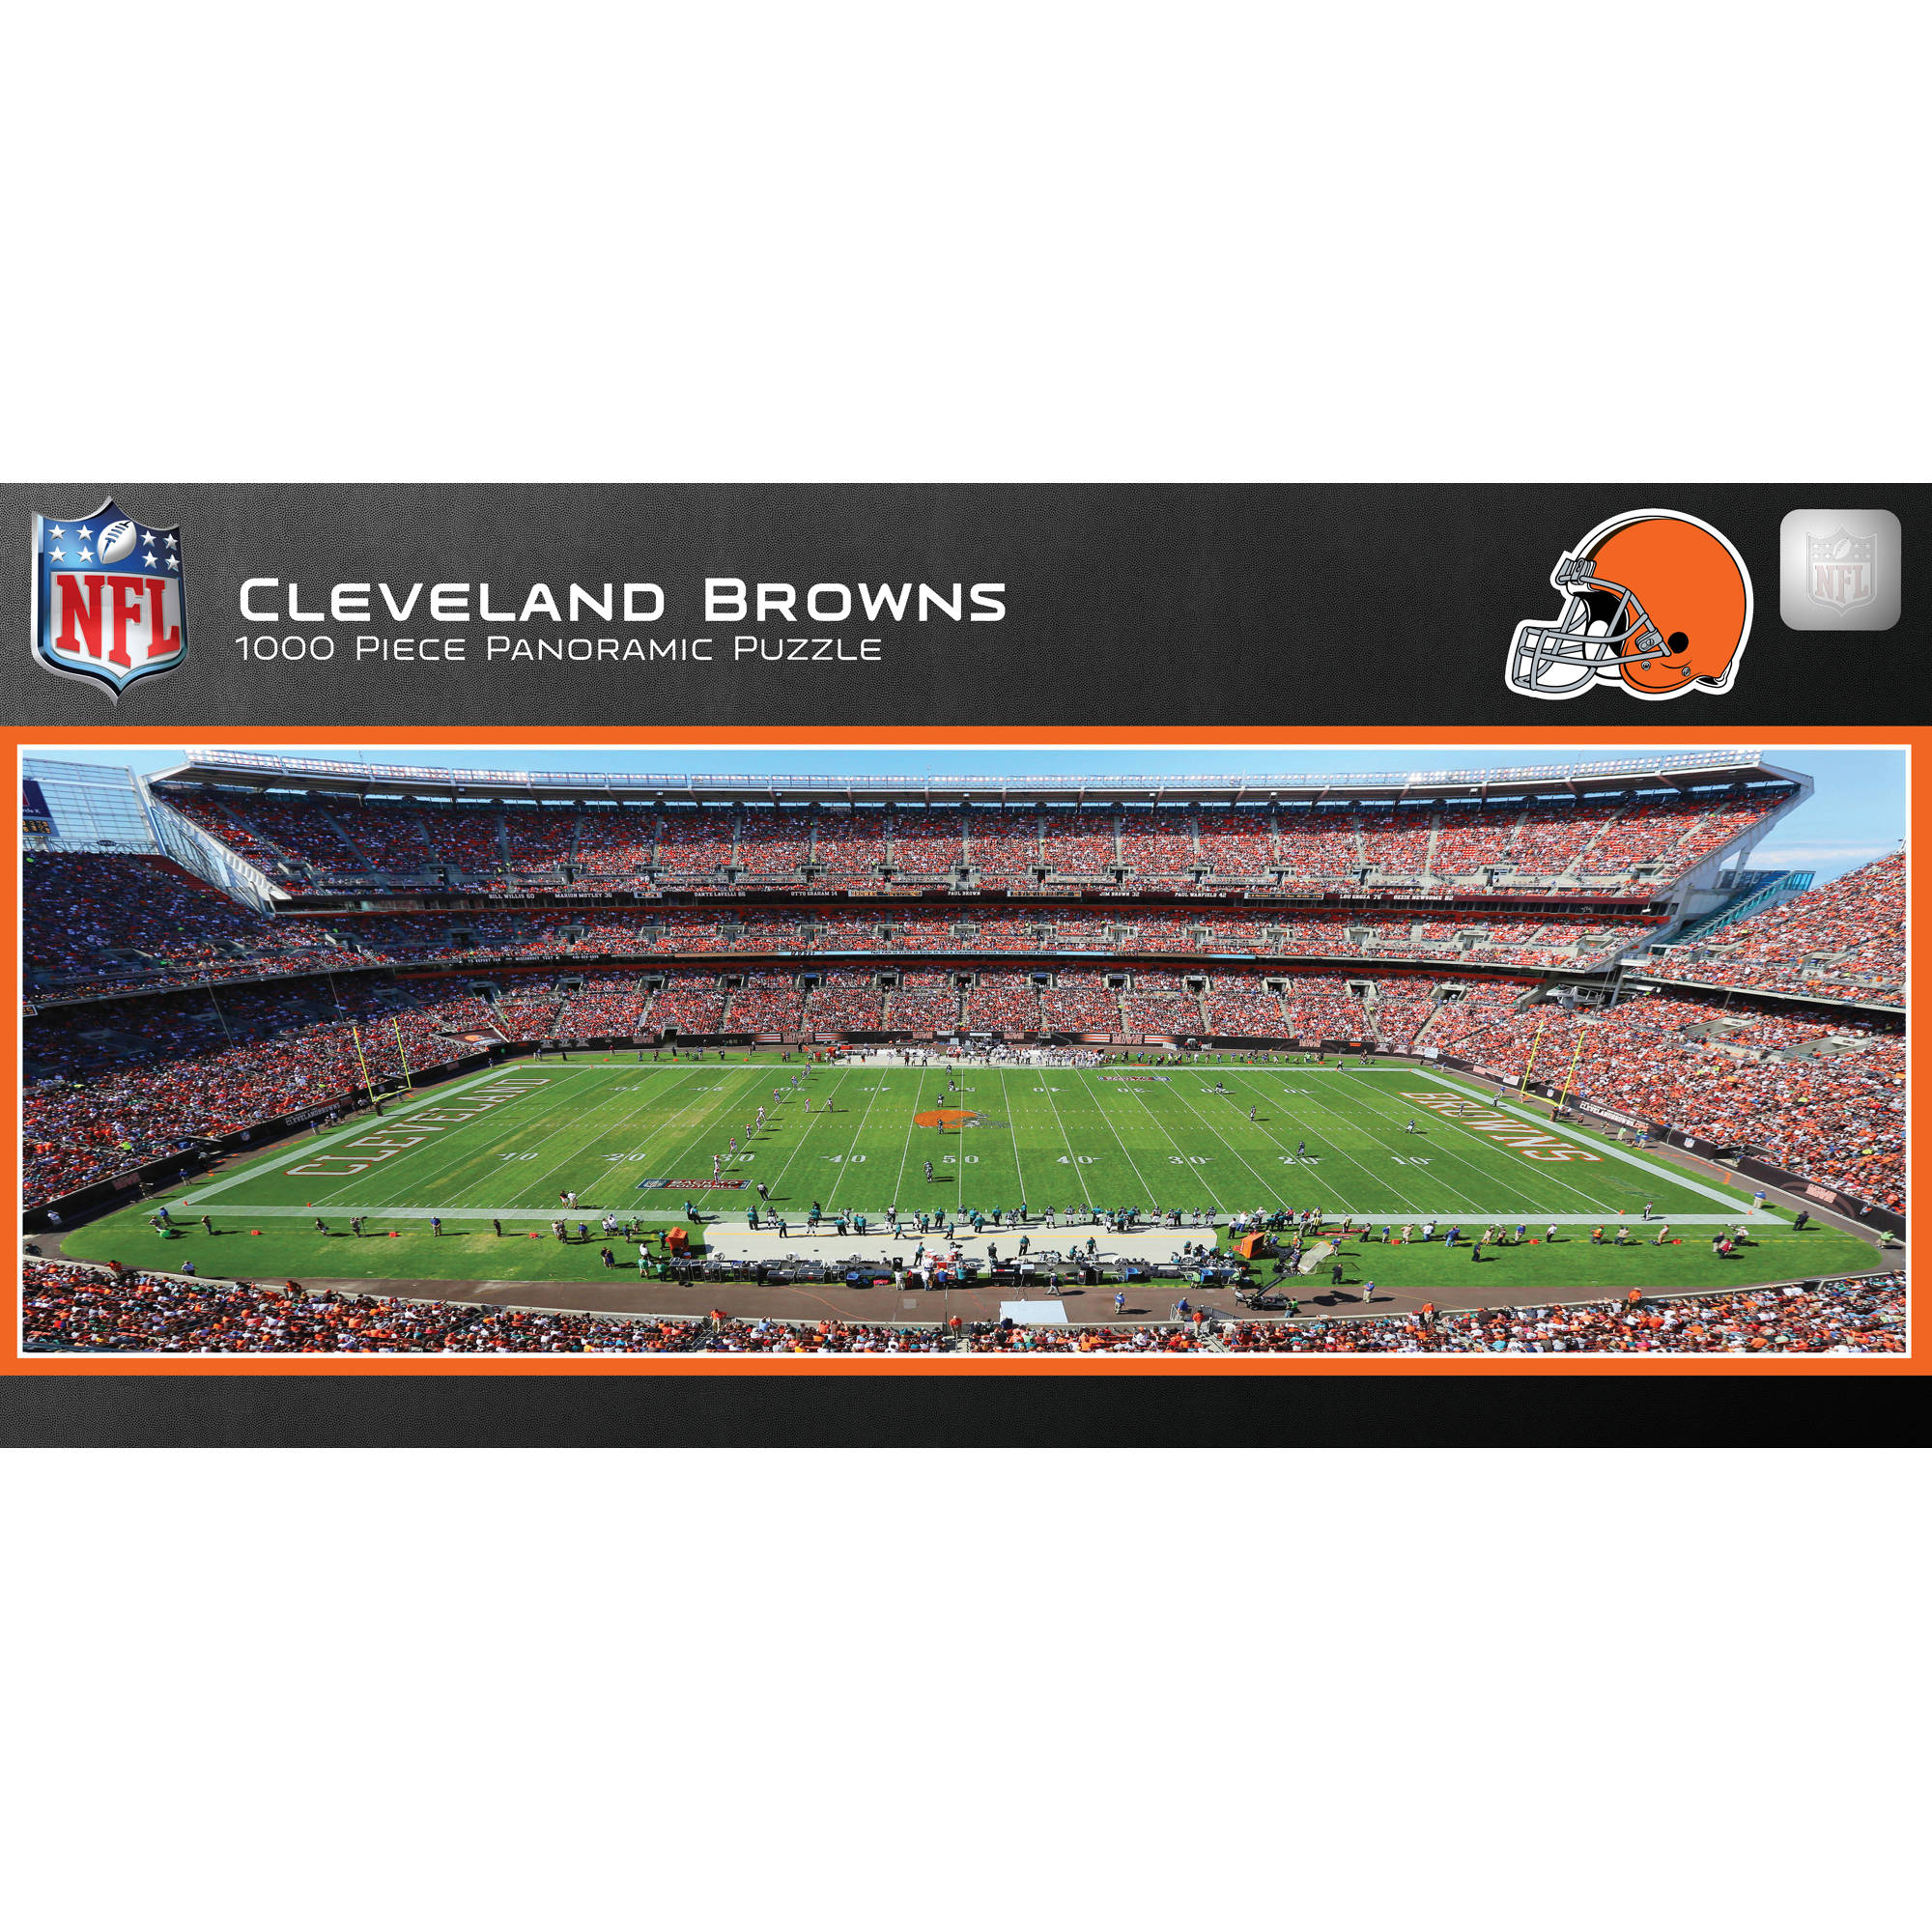 Master Pieces Cleveland Browns Panoramic Stadium Puzzle, 1,000 Pieces by Generic